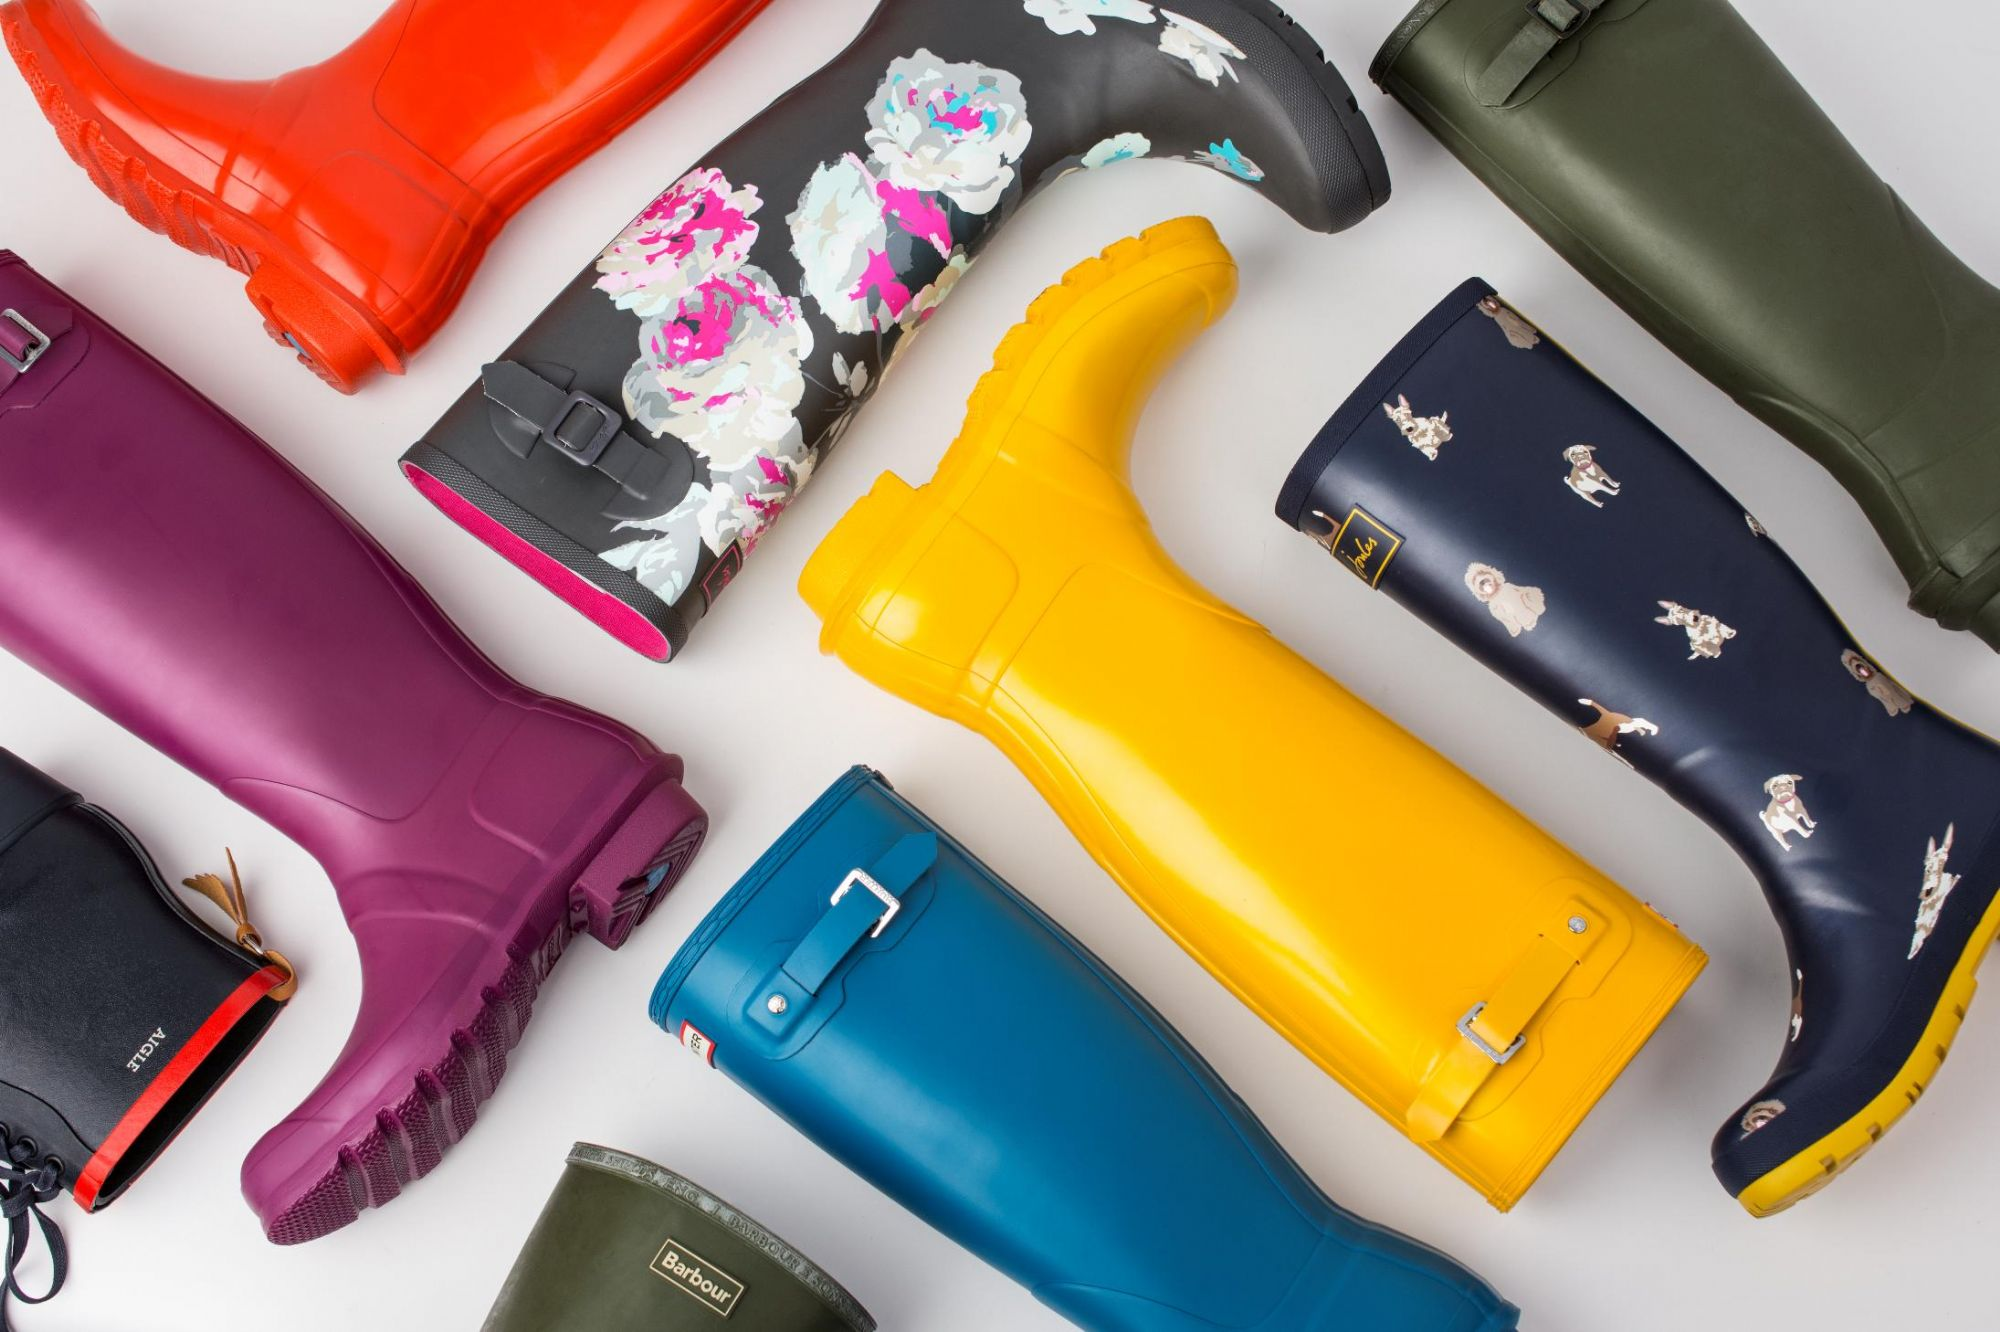 house of bruar wellington boots aigle hunter joules arranged in grid